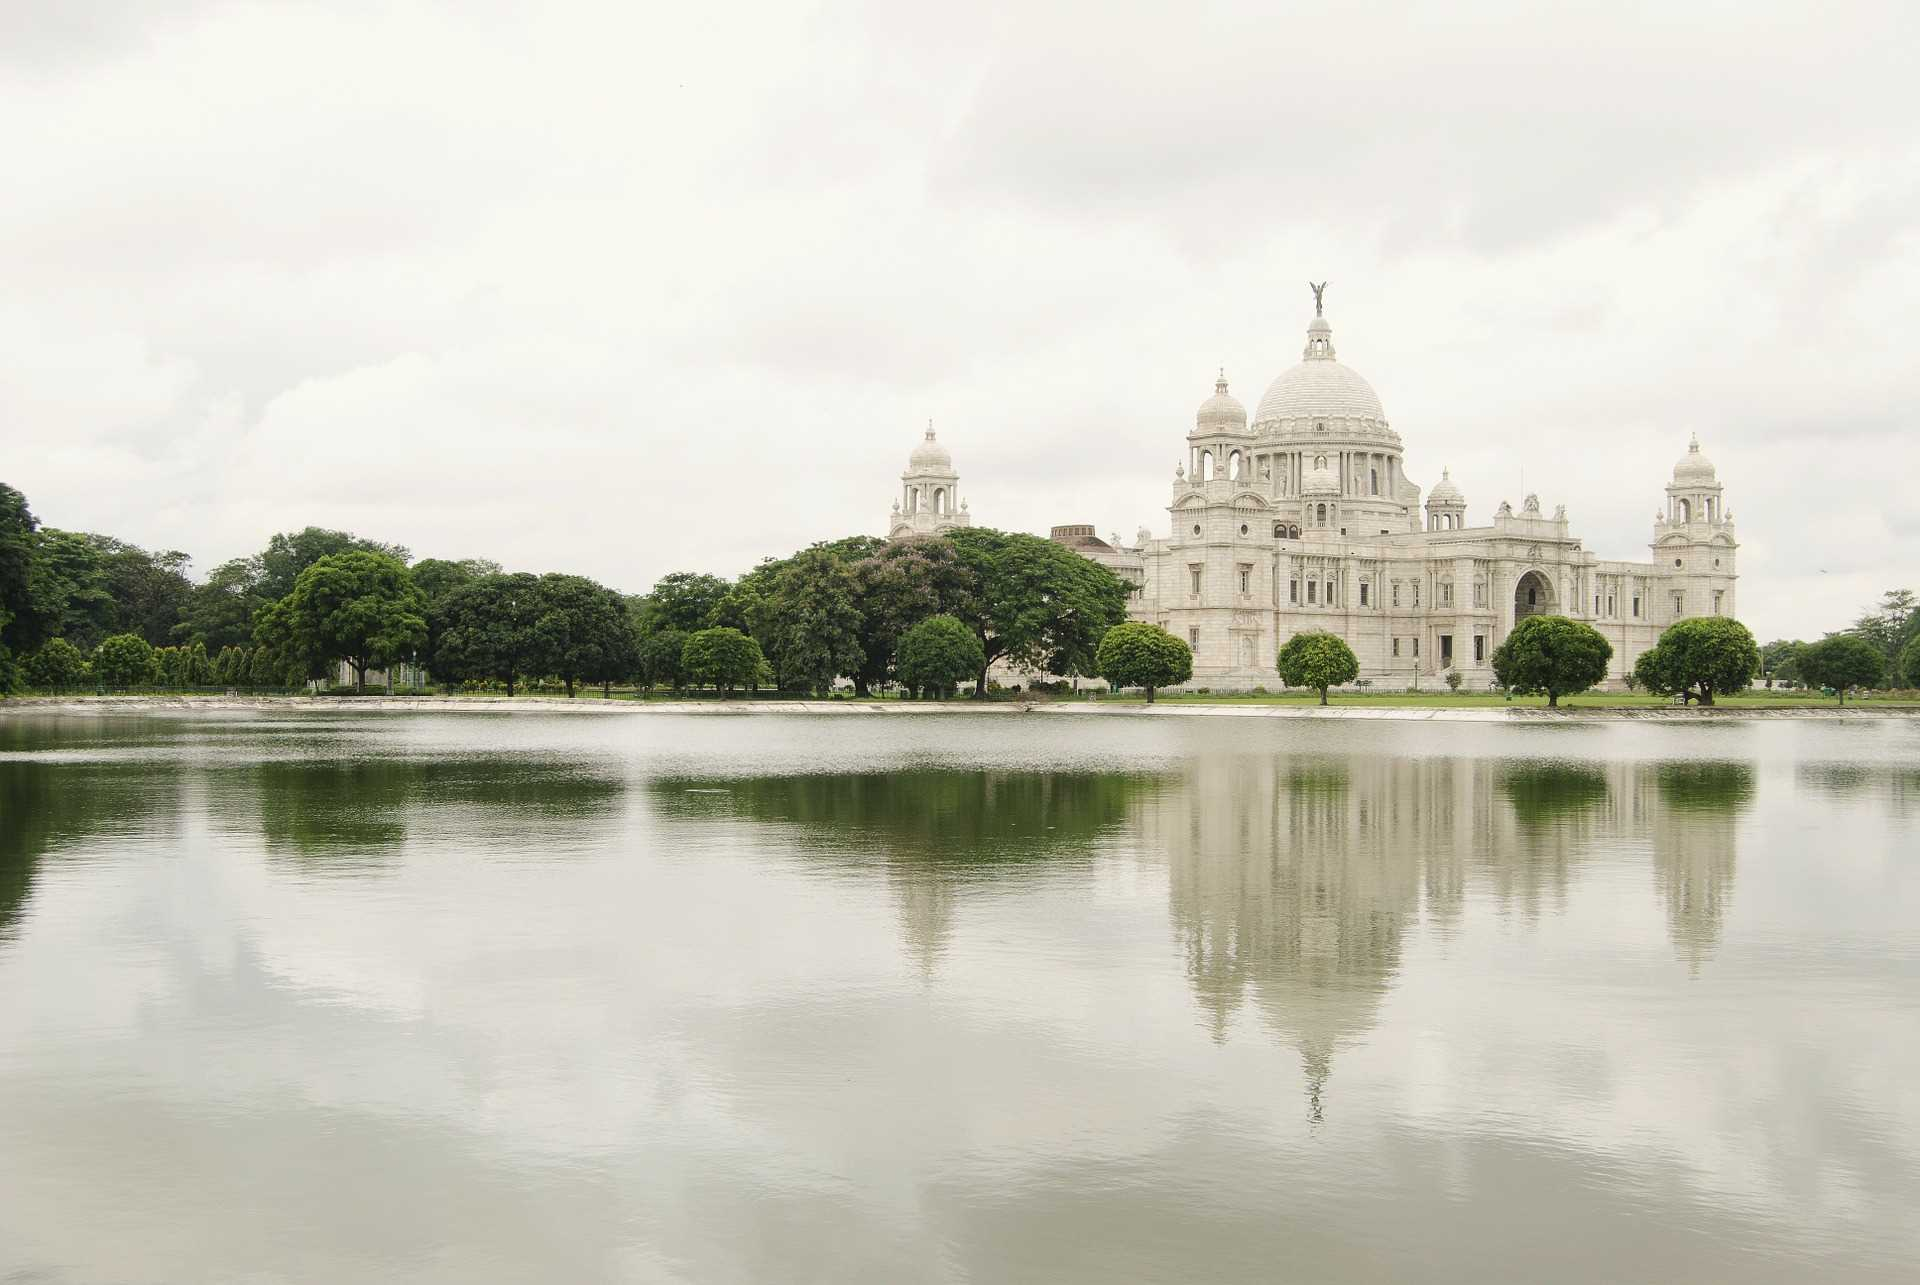 Place to visit in India for Christmas - Kolkata Victoria Memorial